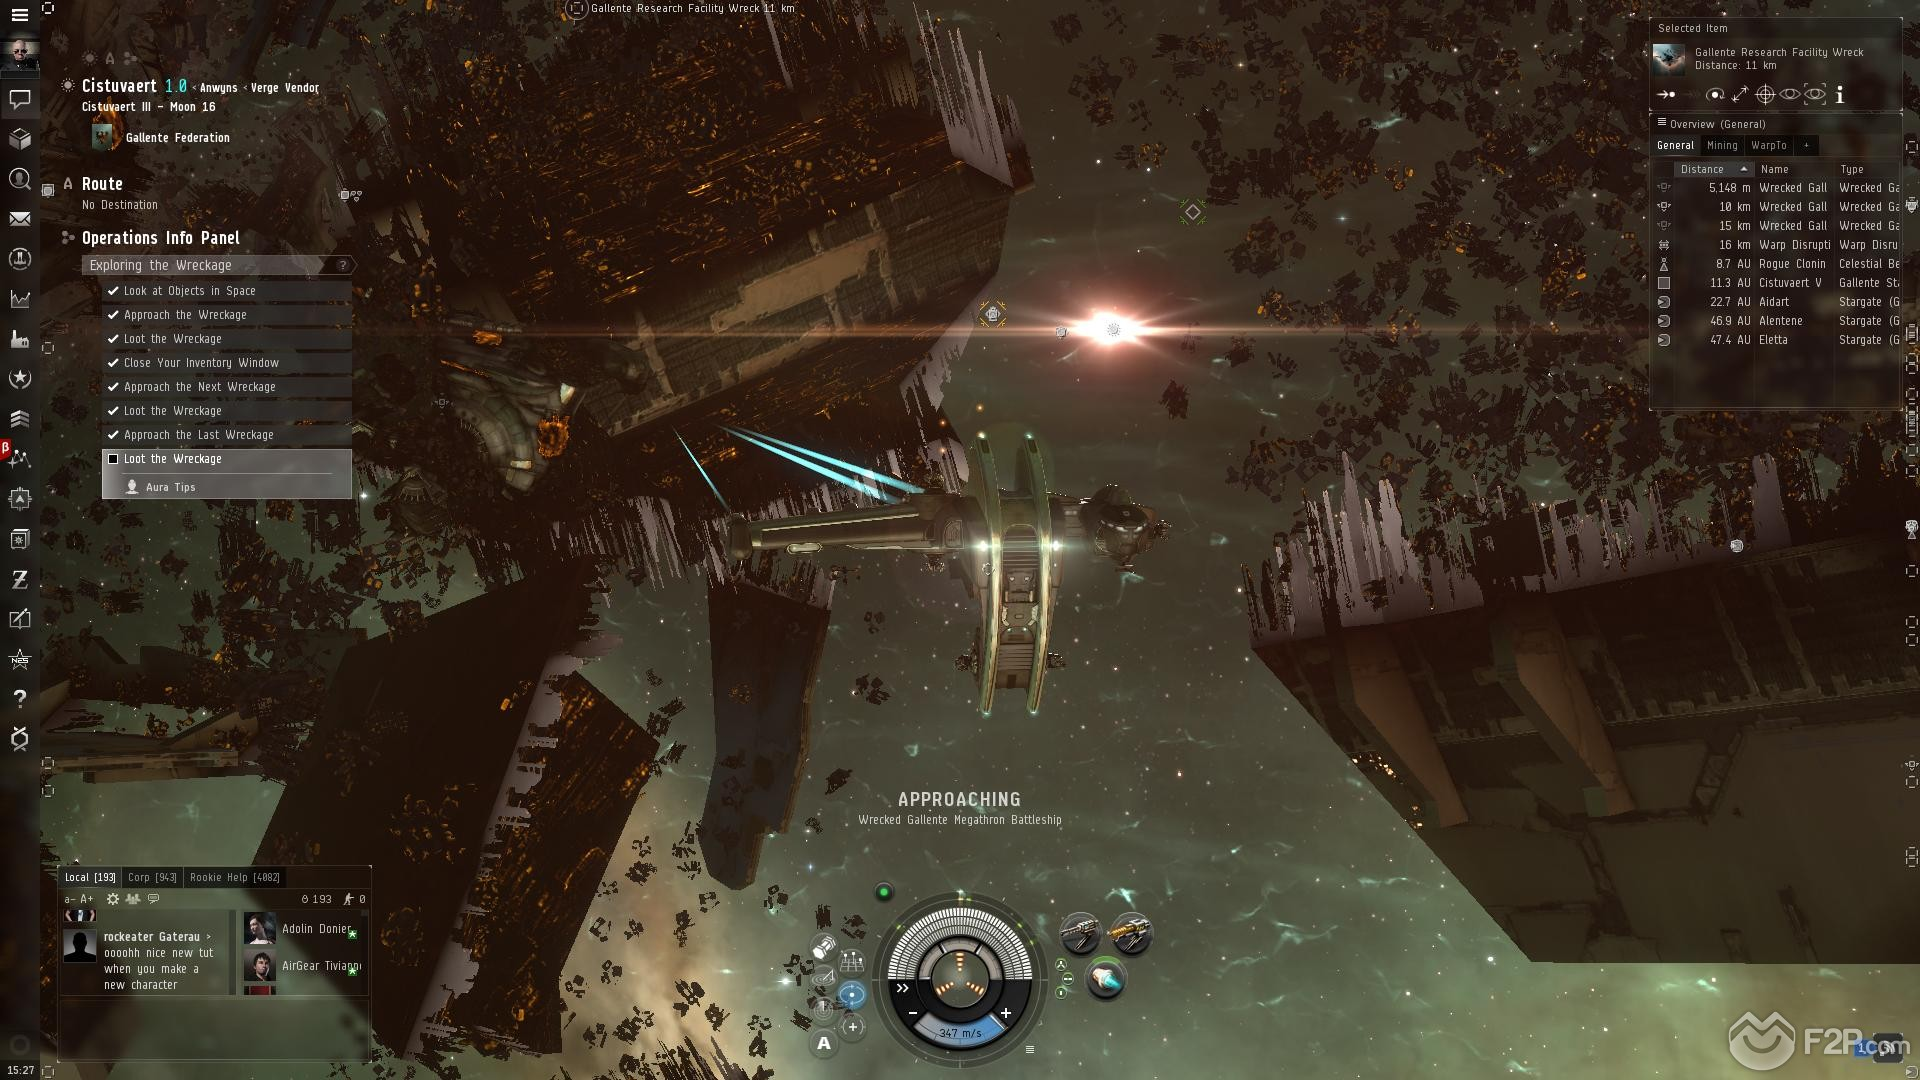 eve online new player guide 2016